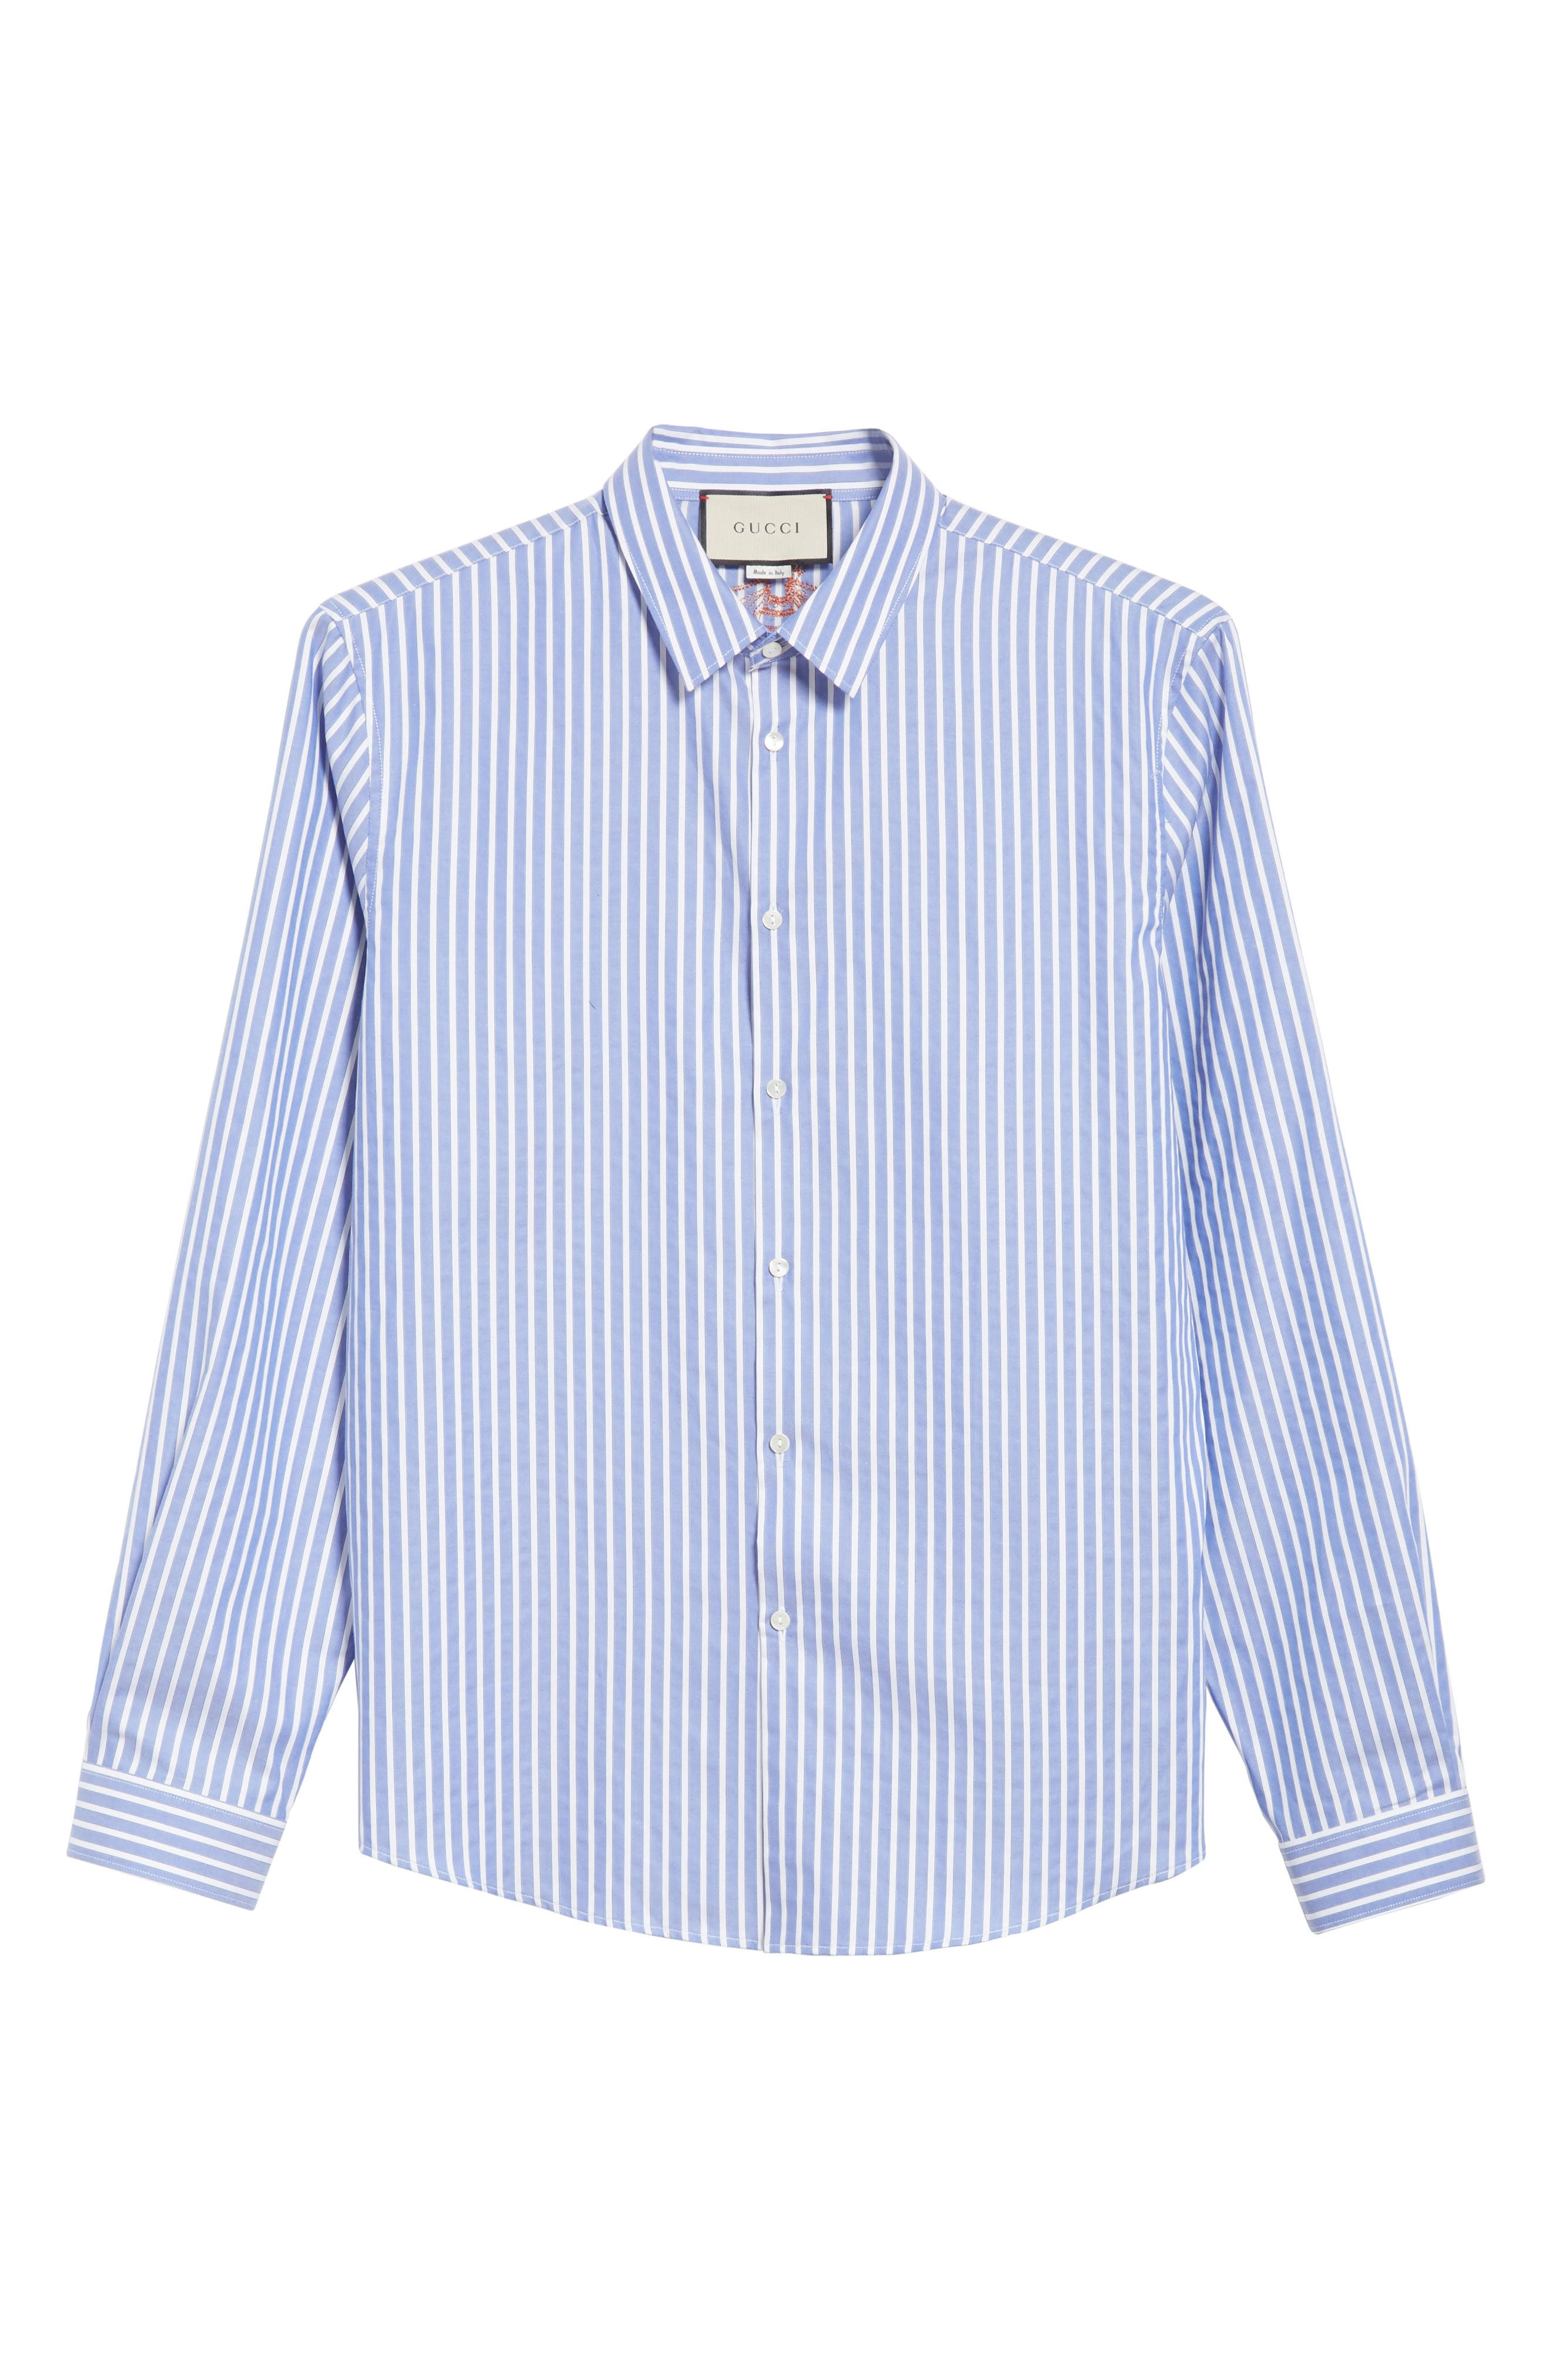 Bee Embroidered Stripe Dress Shirt,                             Alternate thumbnail 6, color,                             4869 BLUE